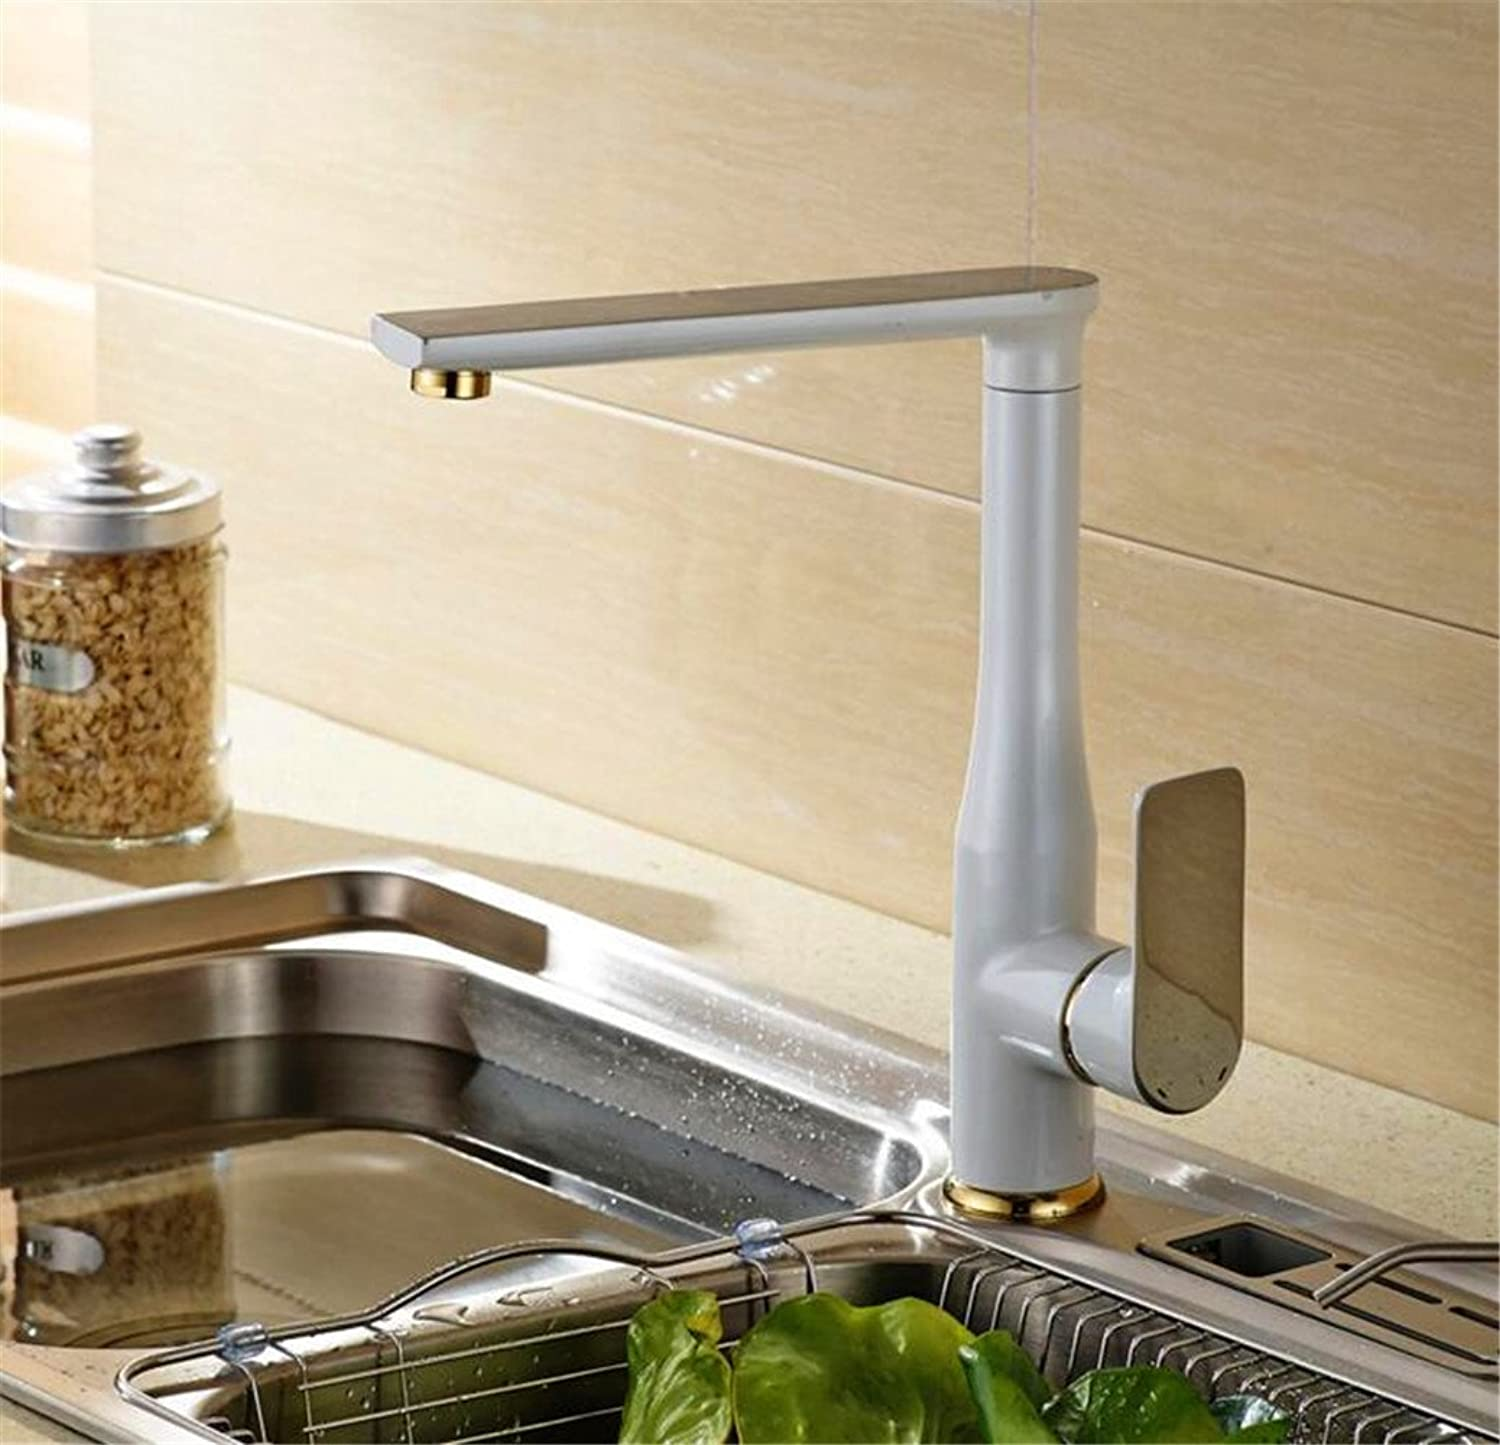 JMQXL High - end luxury faucet European - style hot and cold mixed kitchen faucet black and white paint taps copper ( color   B )